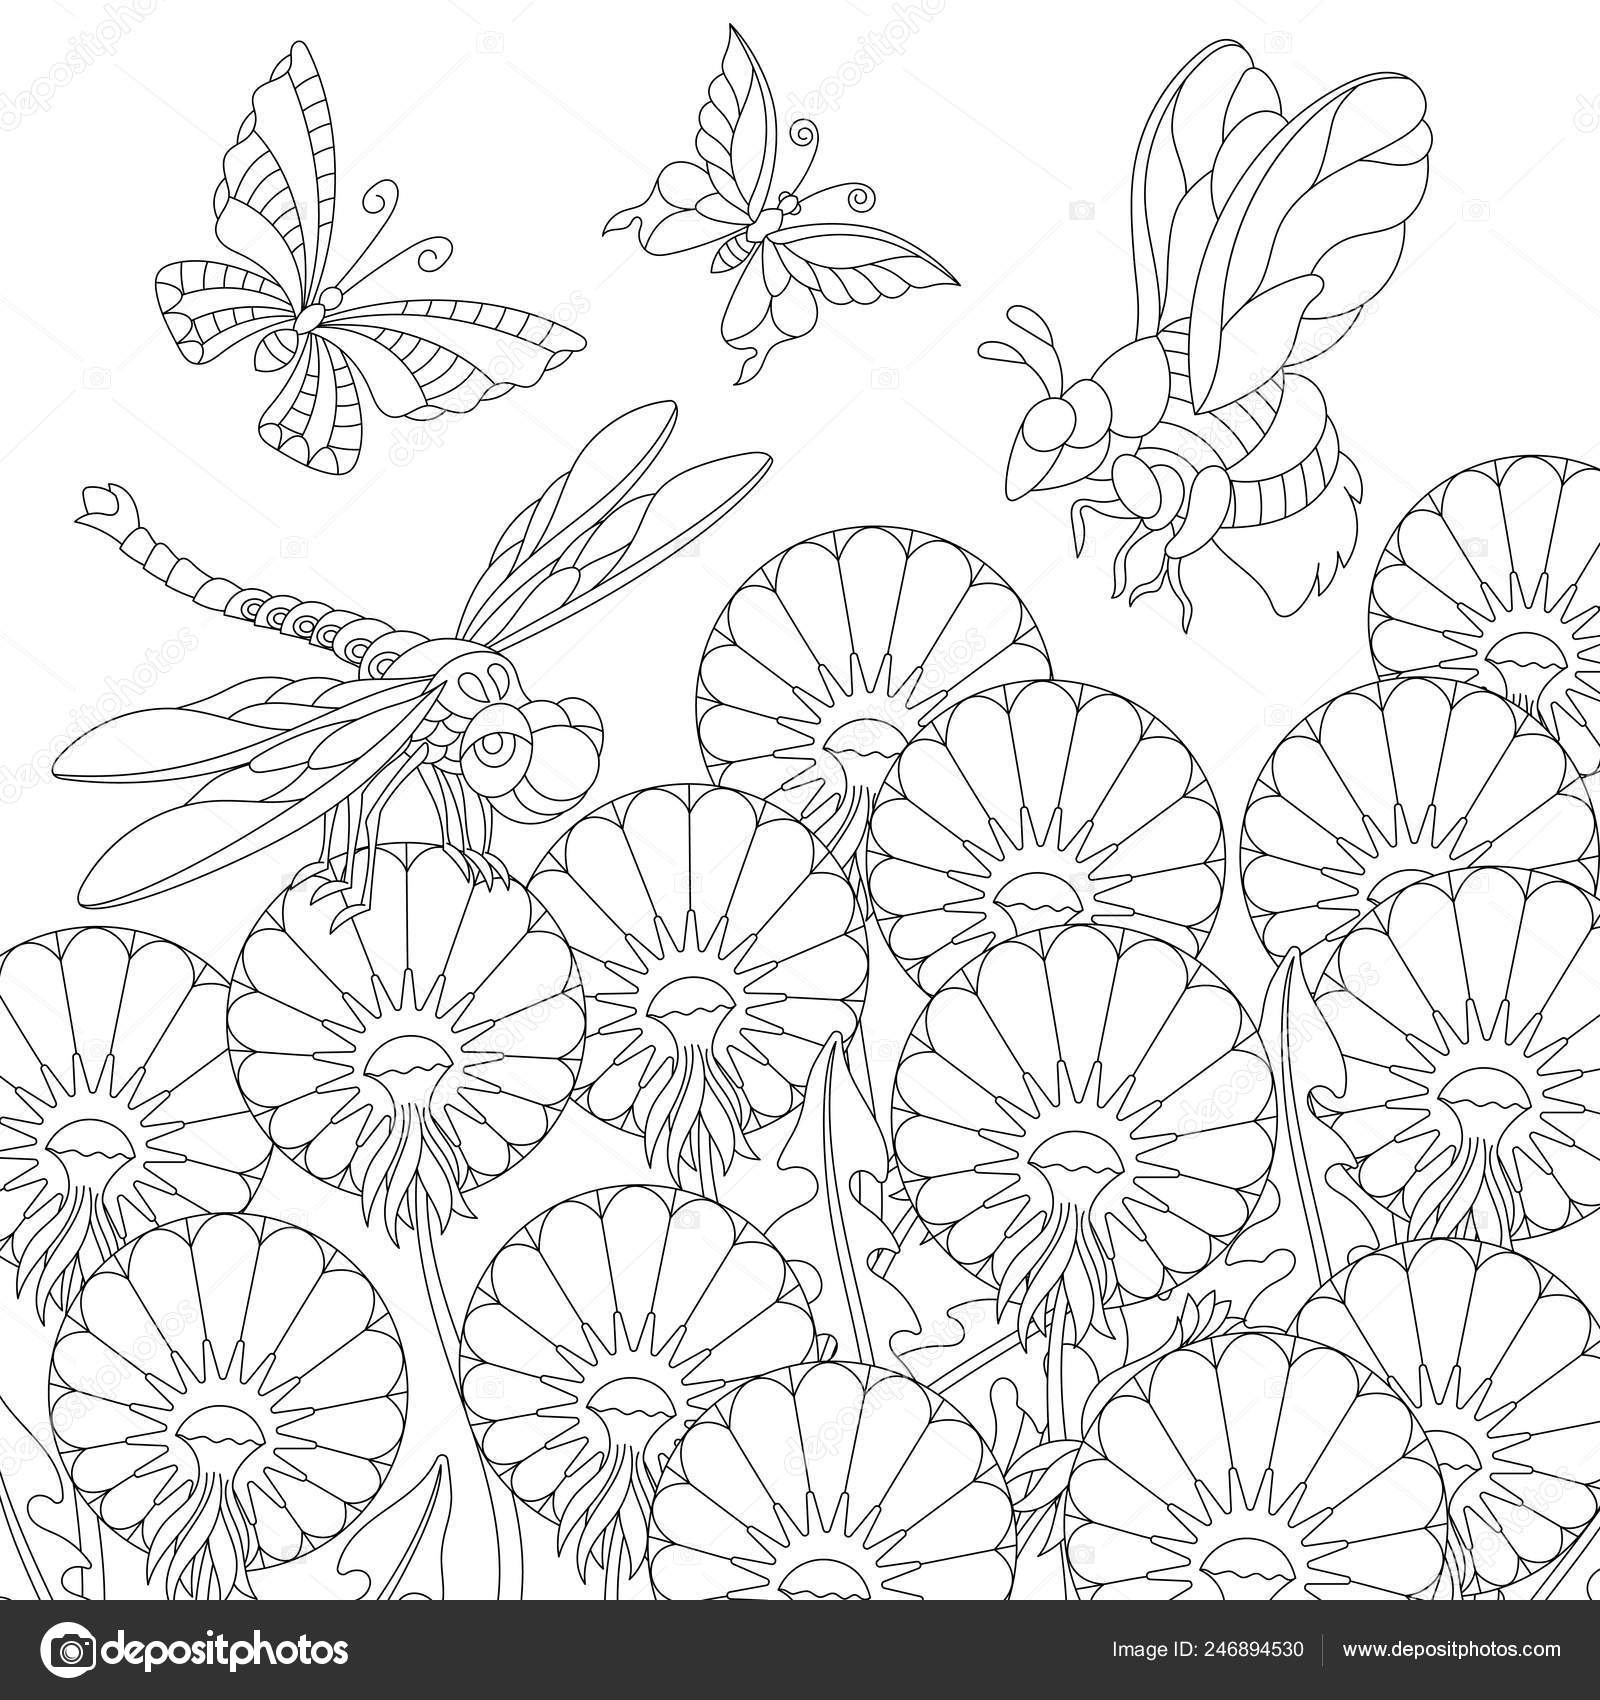 Zentangle Coloring Page Colouring Picture Butterfly Dragonfly Honey Bee Dandelion Vector Image By C Sybirko Vector Stock 246894530